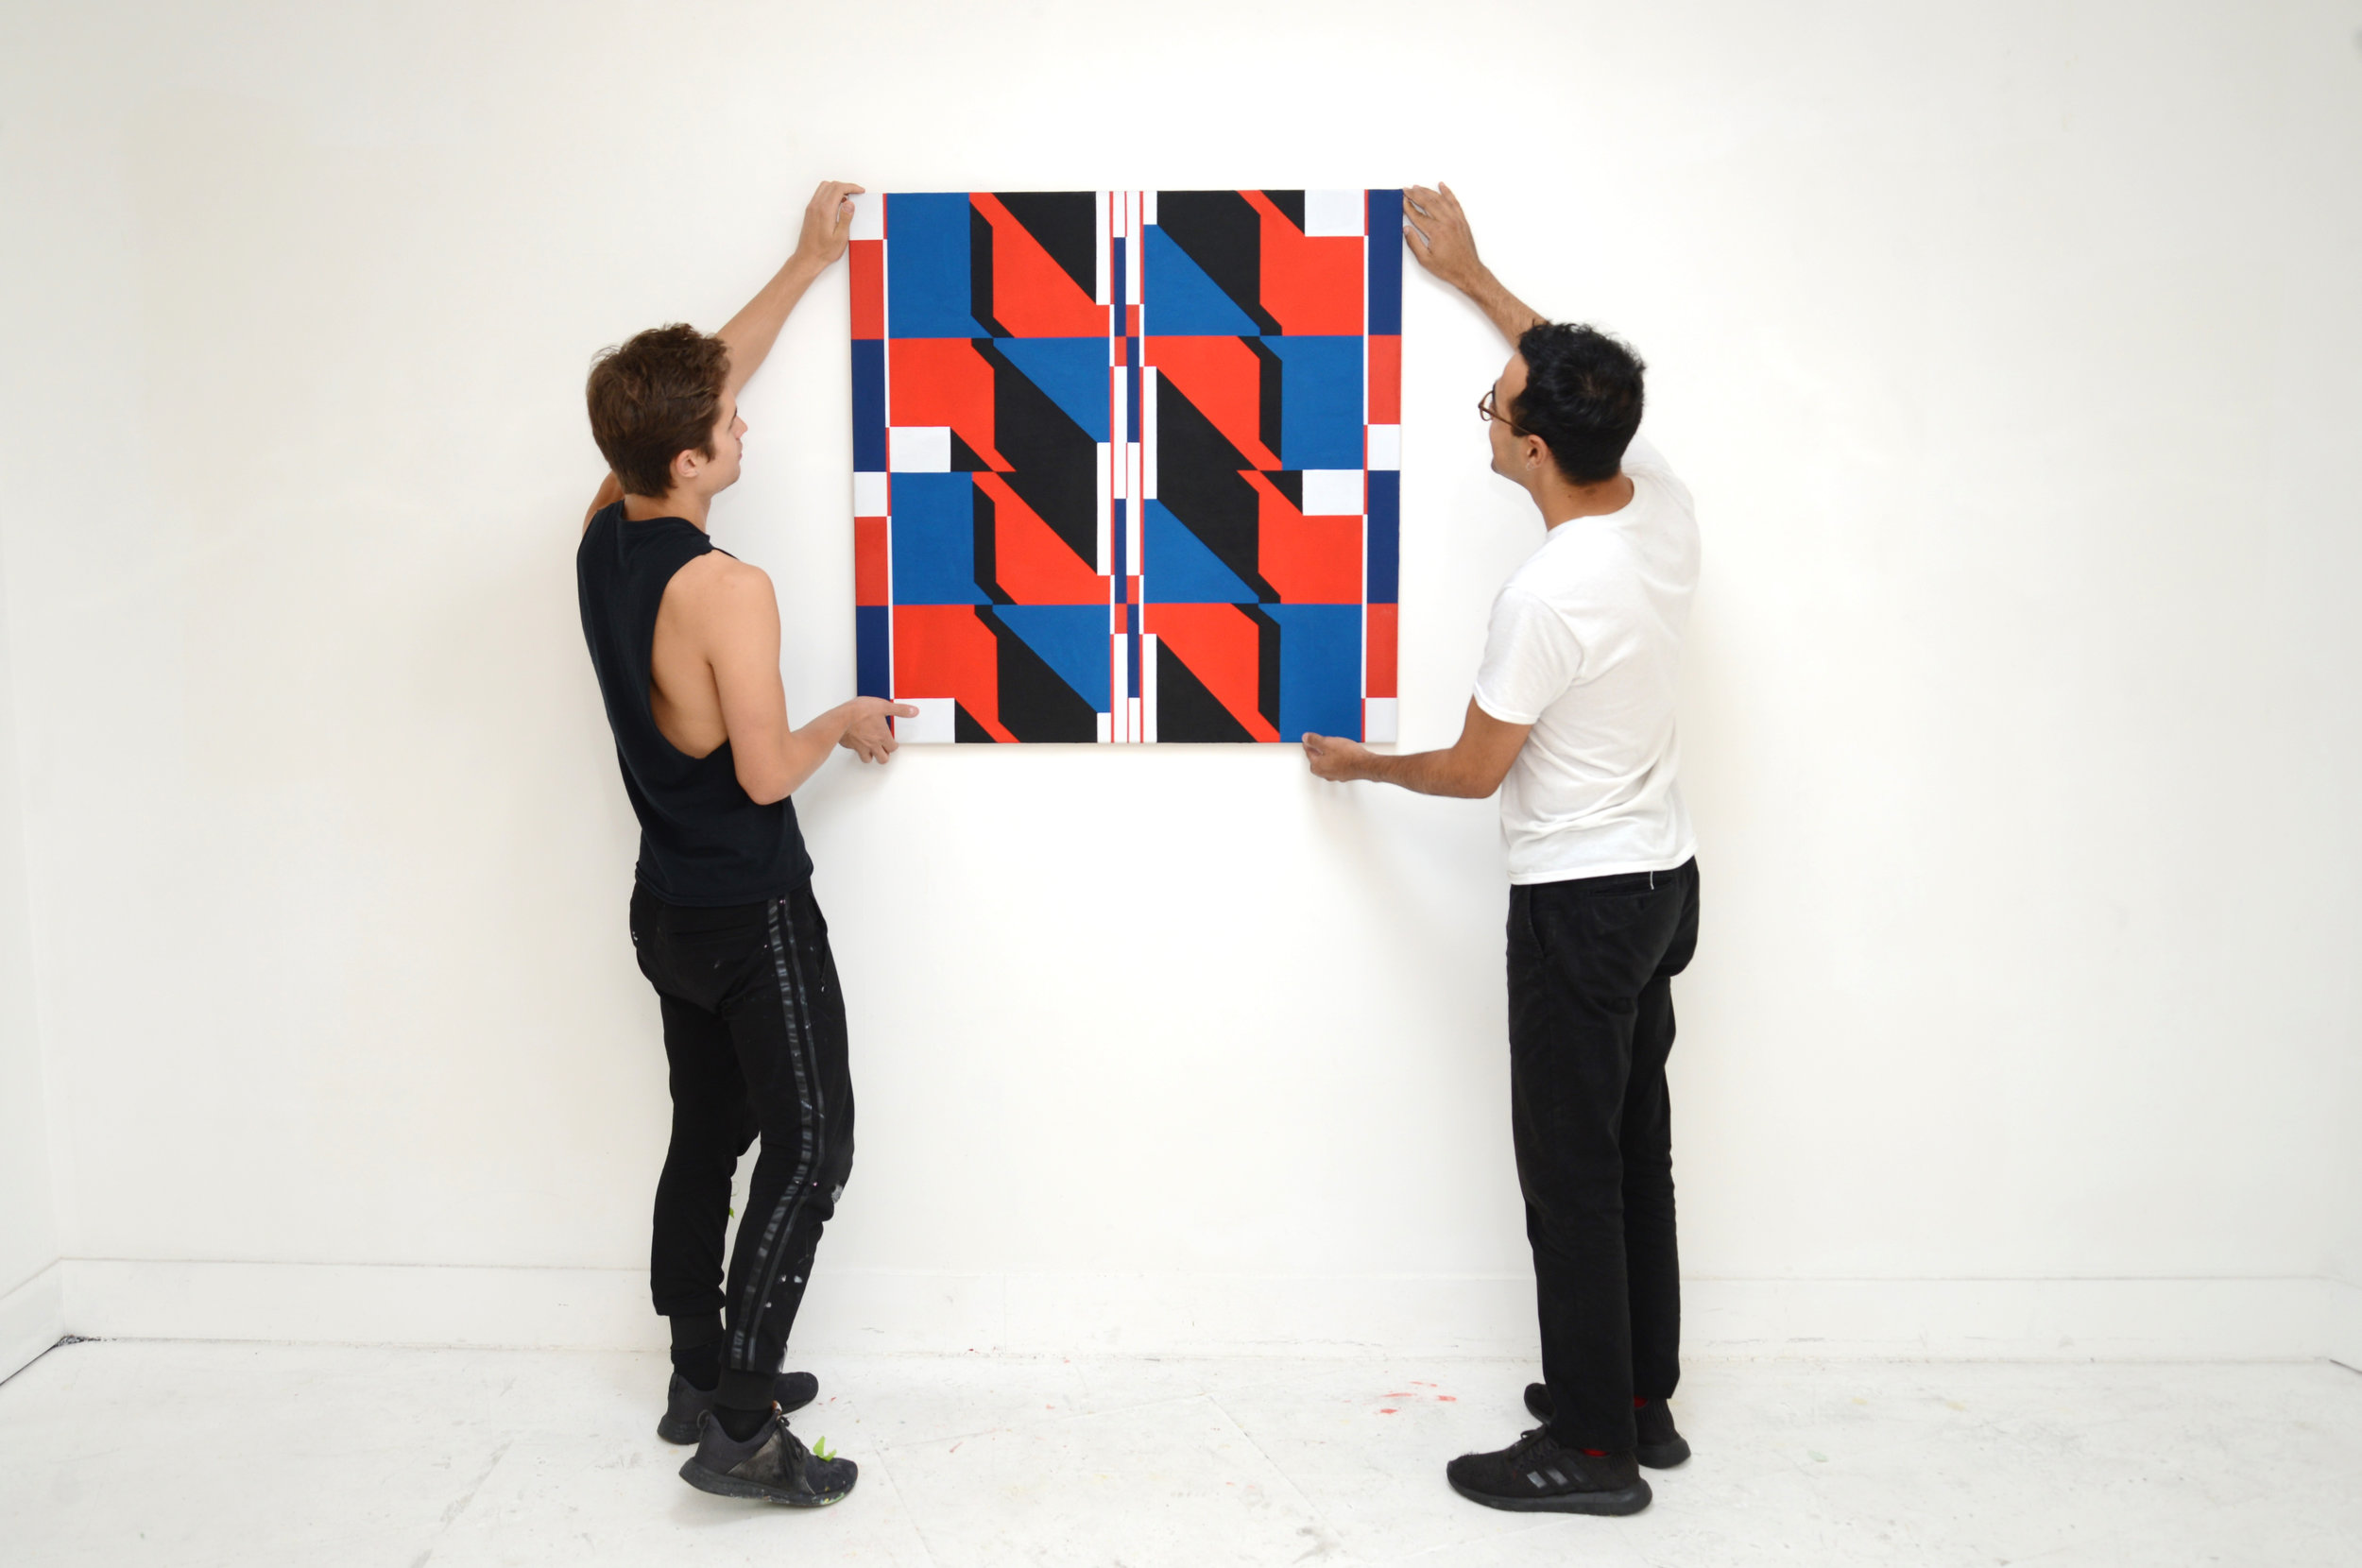 Kevin Umaña and Brandon Lipchik hanging the end of residency show in August 2018. (Artwork: Kevin Umaña)